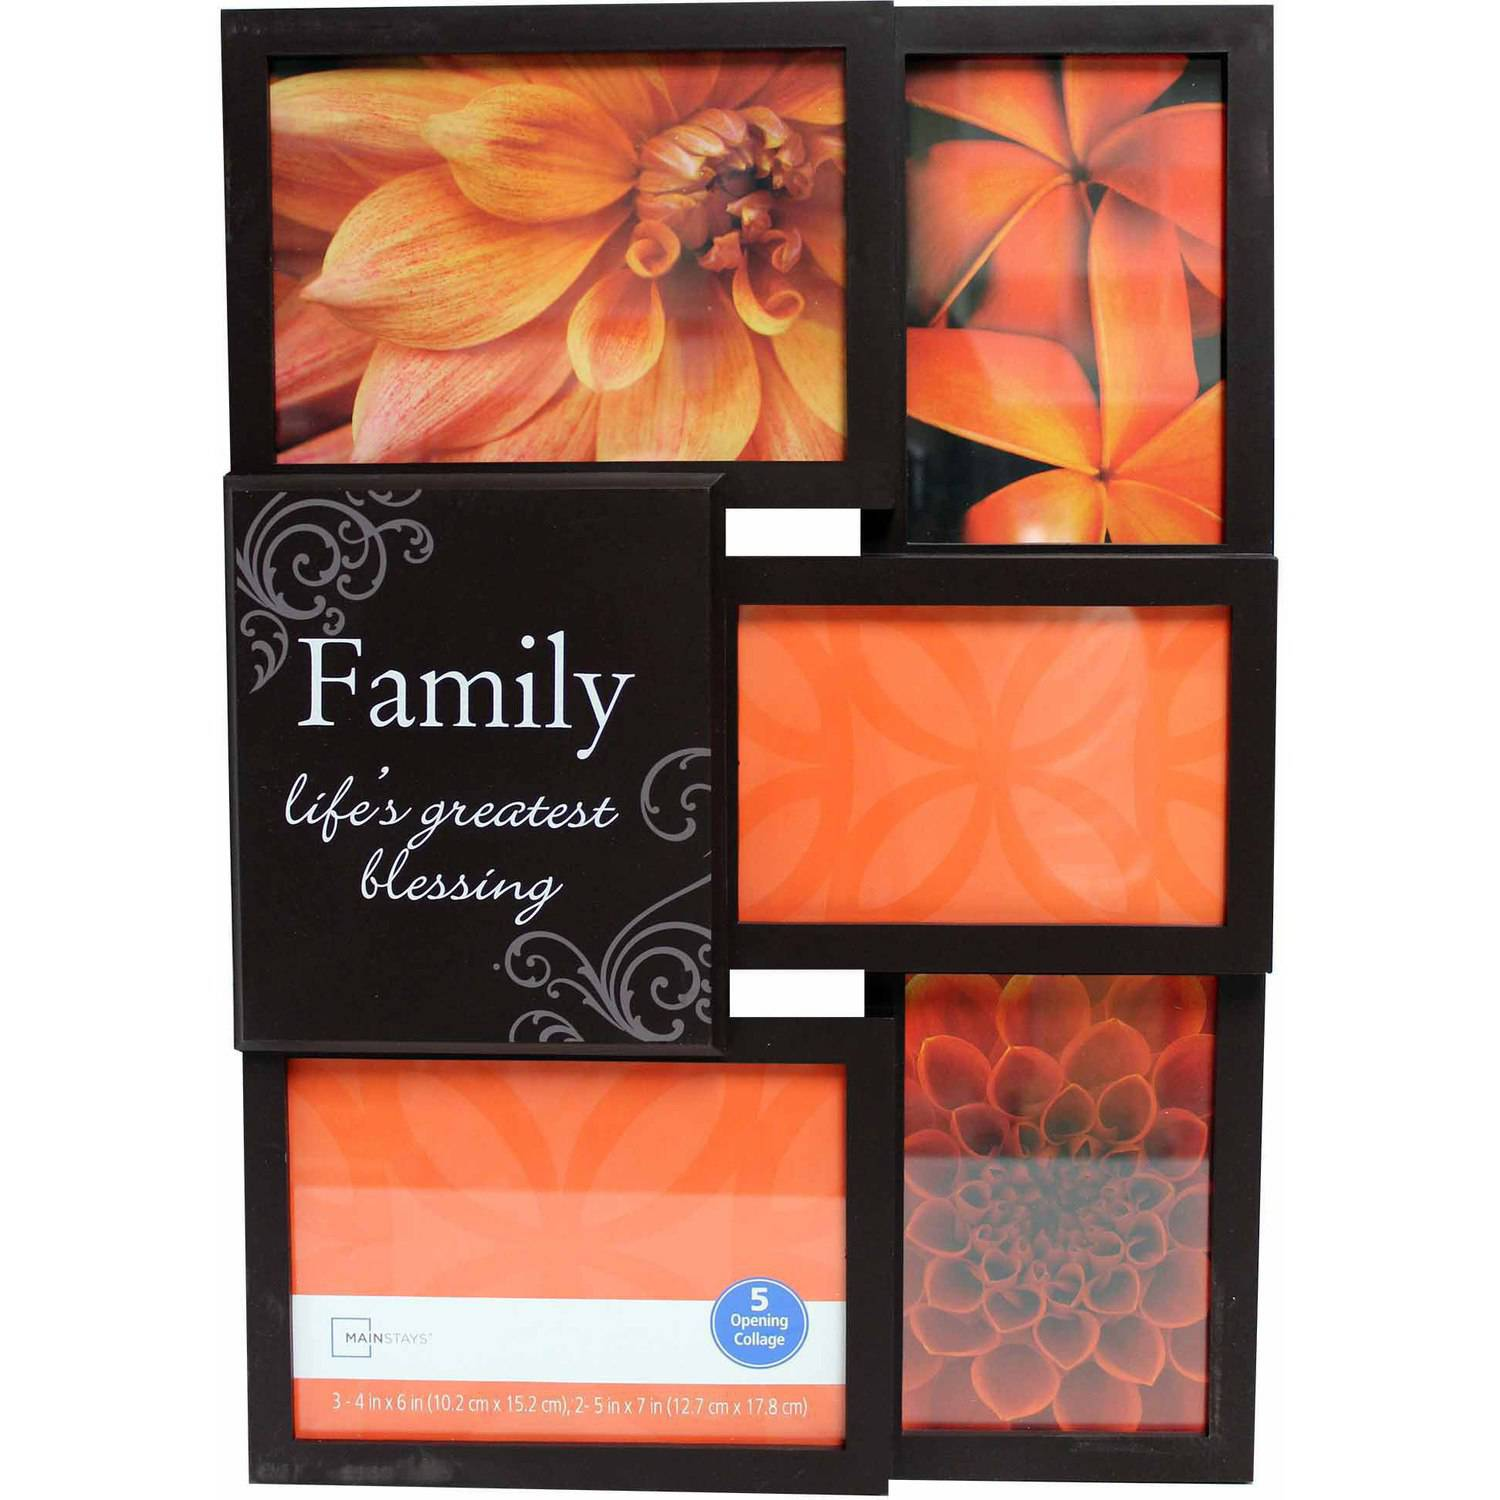 Mainstays 5-Opening Family Collage Picture Frame, Brown